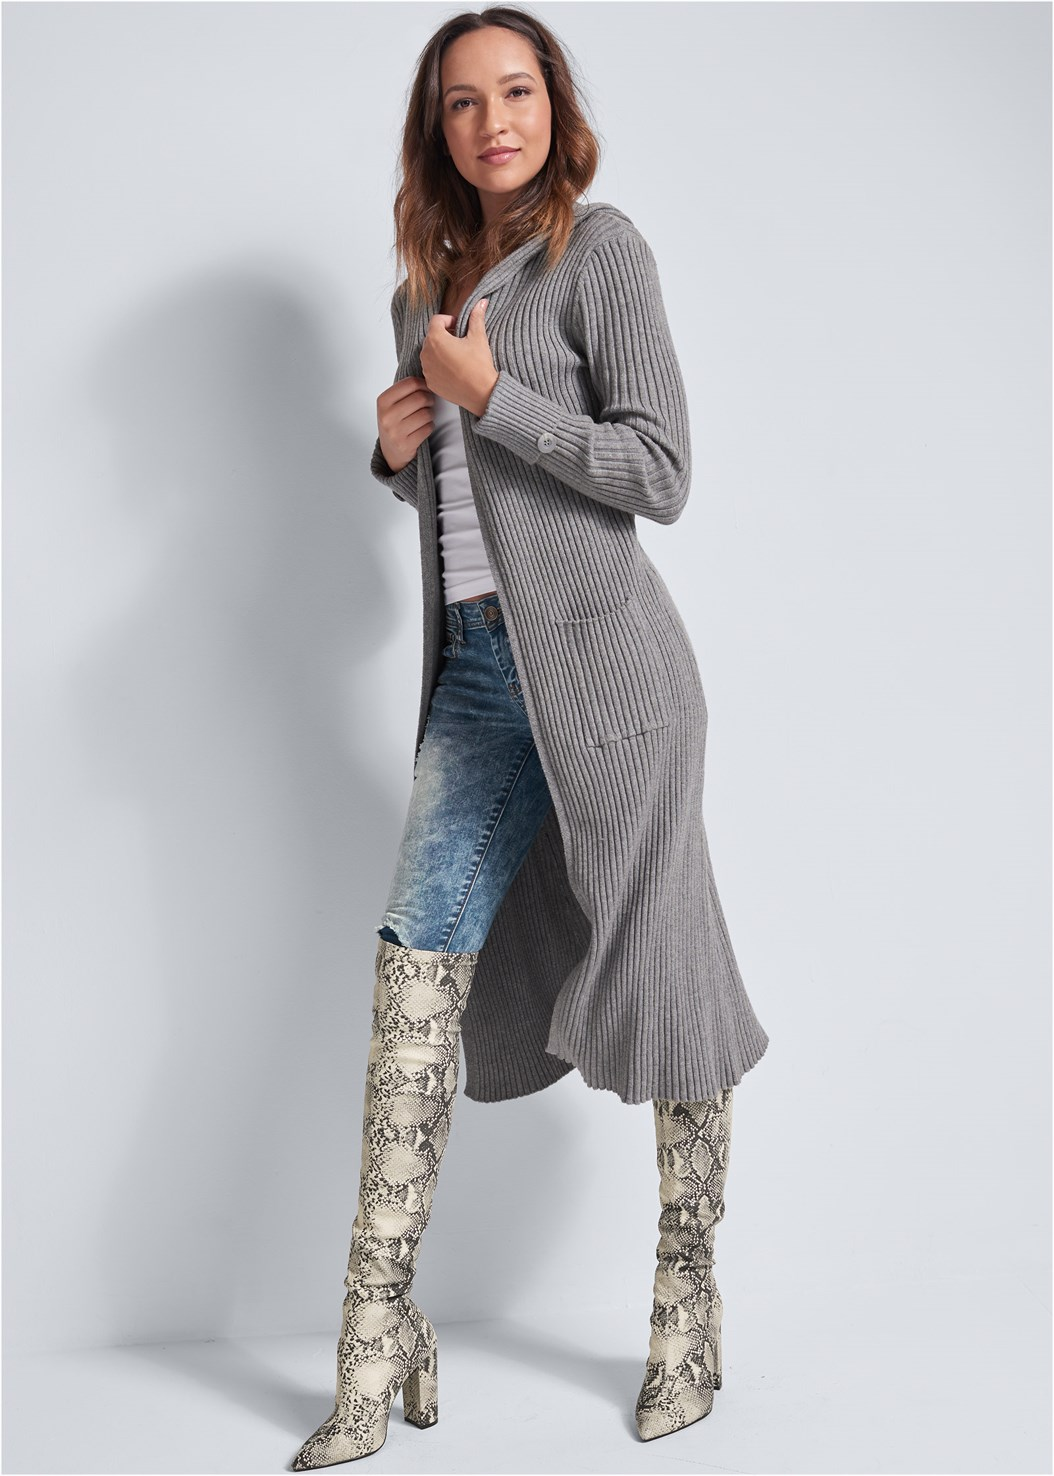 Ribbed Hooded Duster,Basic Cami Two Pack,Ripped Bum Lifter Jeans,Acid Wash Jeans,Bra With A Heart,Animal Print Boots,Western Style Booties